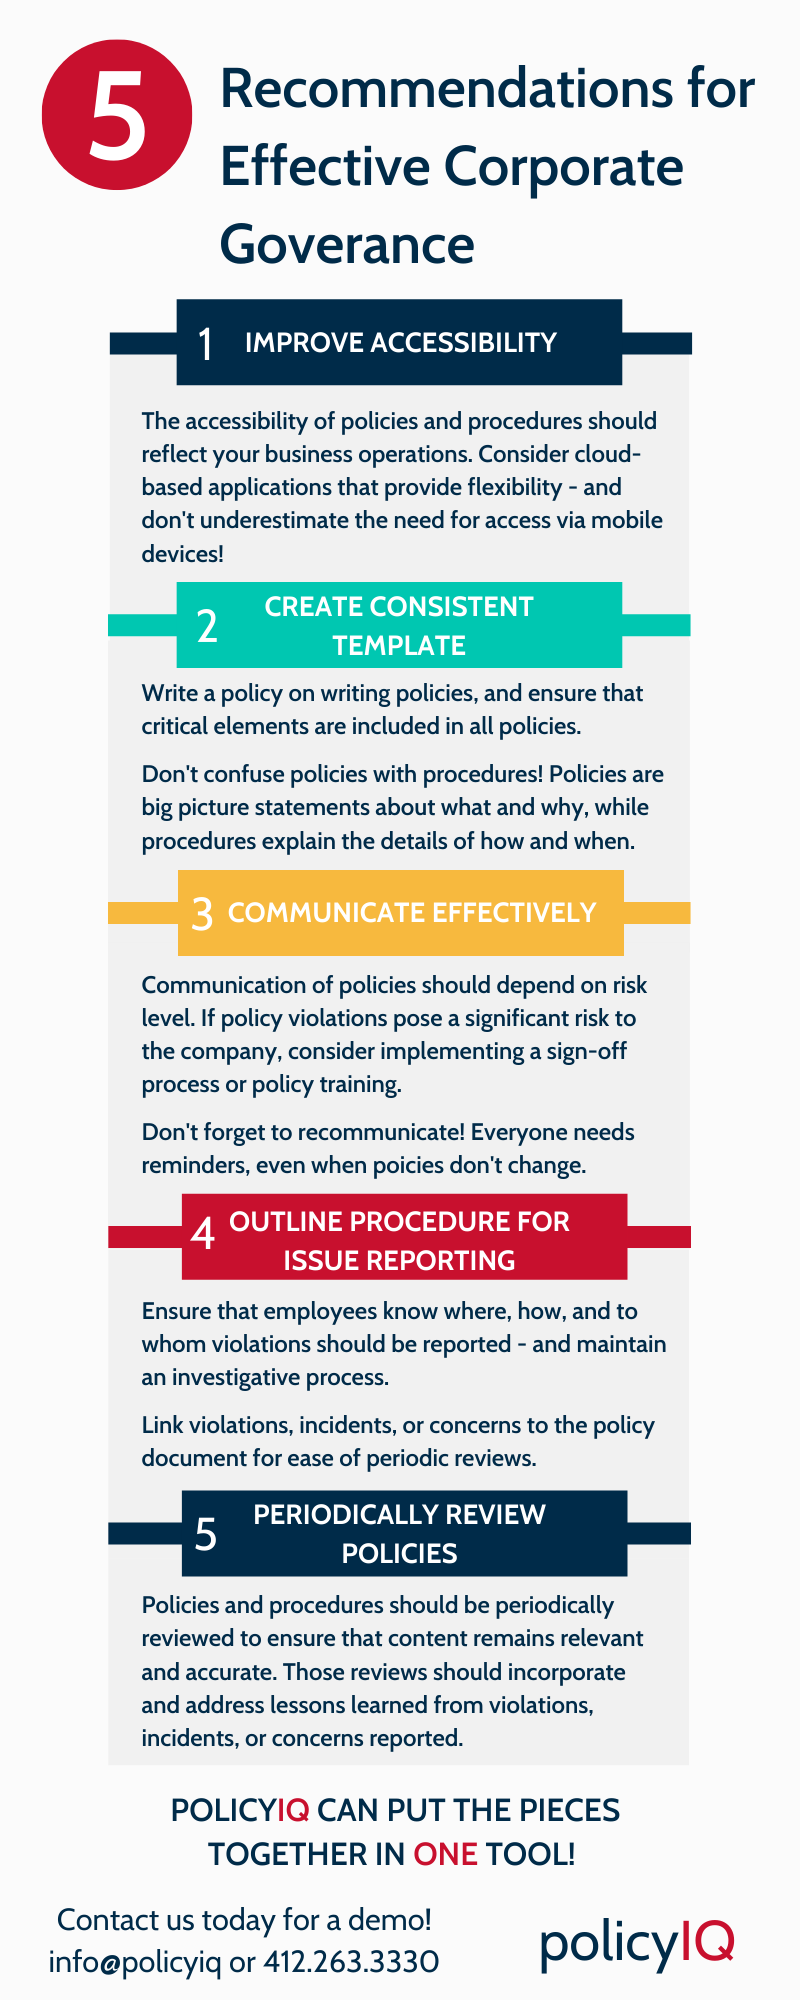 Infographic describing the 5 recommendations for effective corporate governance. Step 1: Improve Assessibility. Step 2: Create Consistent Template. Step 3: Communicate Effectively. Step 4: Outline Procedure for Issue Reporting. Step 5: Periodically Review Policies.